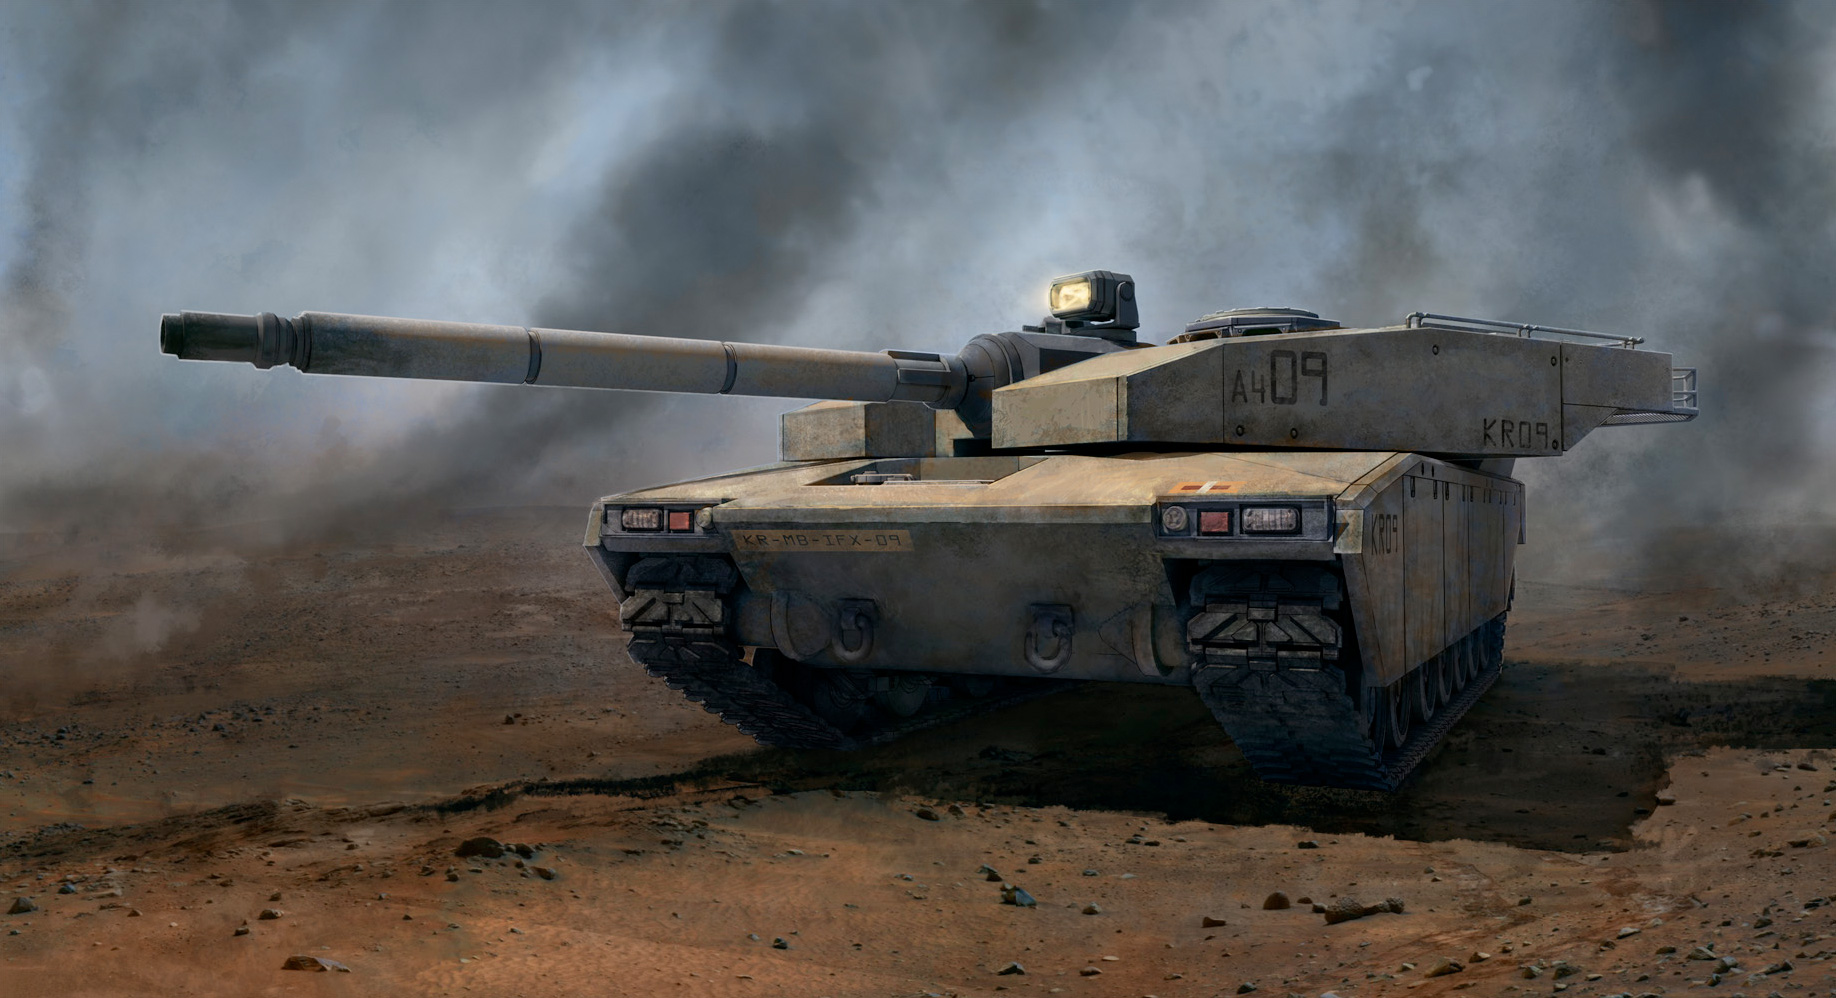 Tank Concept Art By Kemp Remillard 01